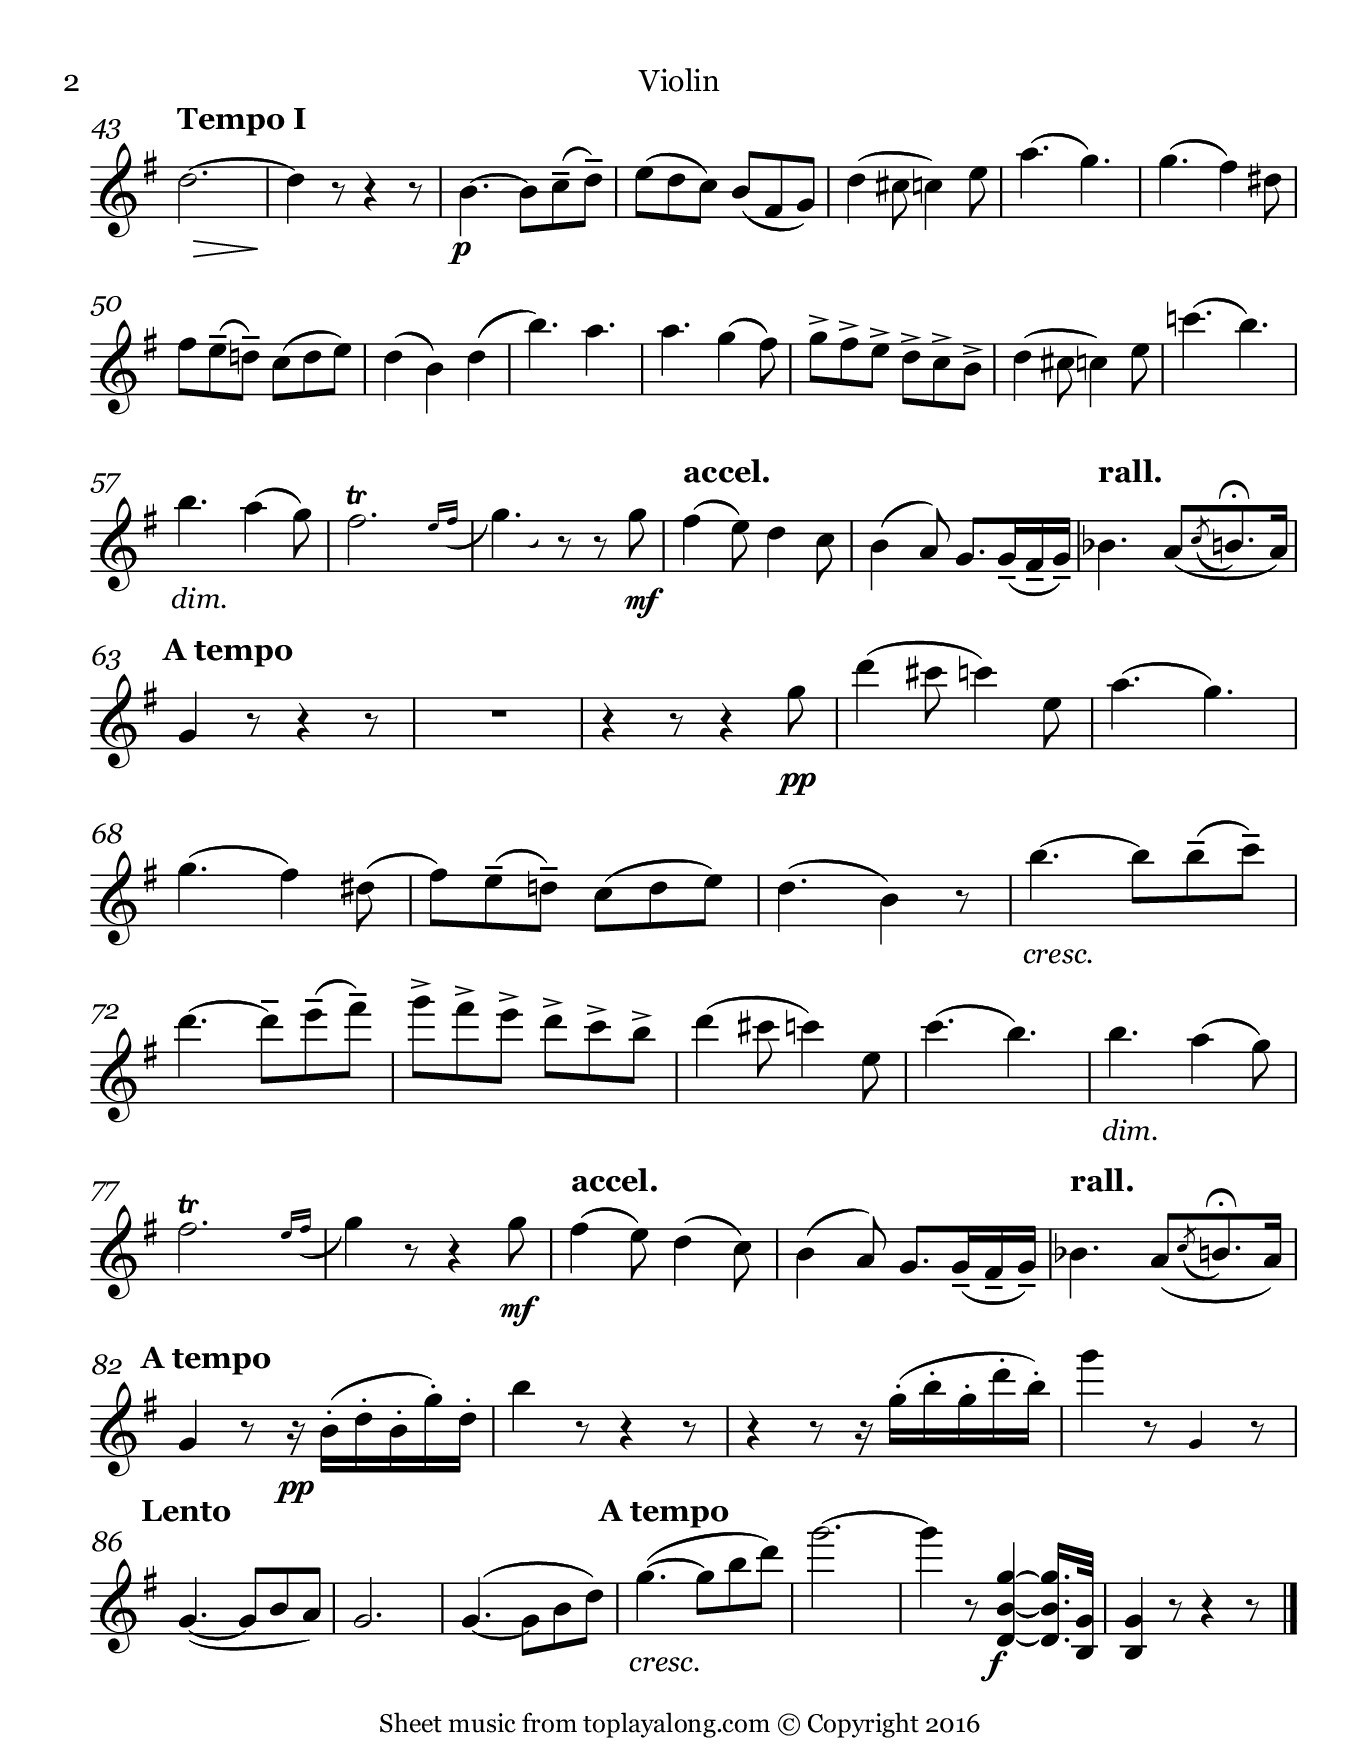 La seranata (Angel's Serenade) by Braga. Sheet music for Violin, page 2.